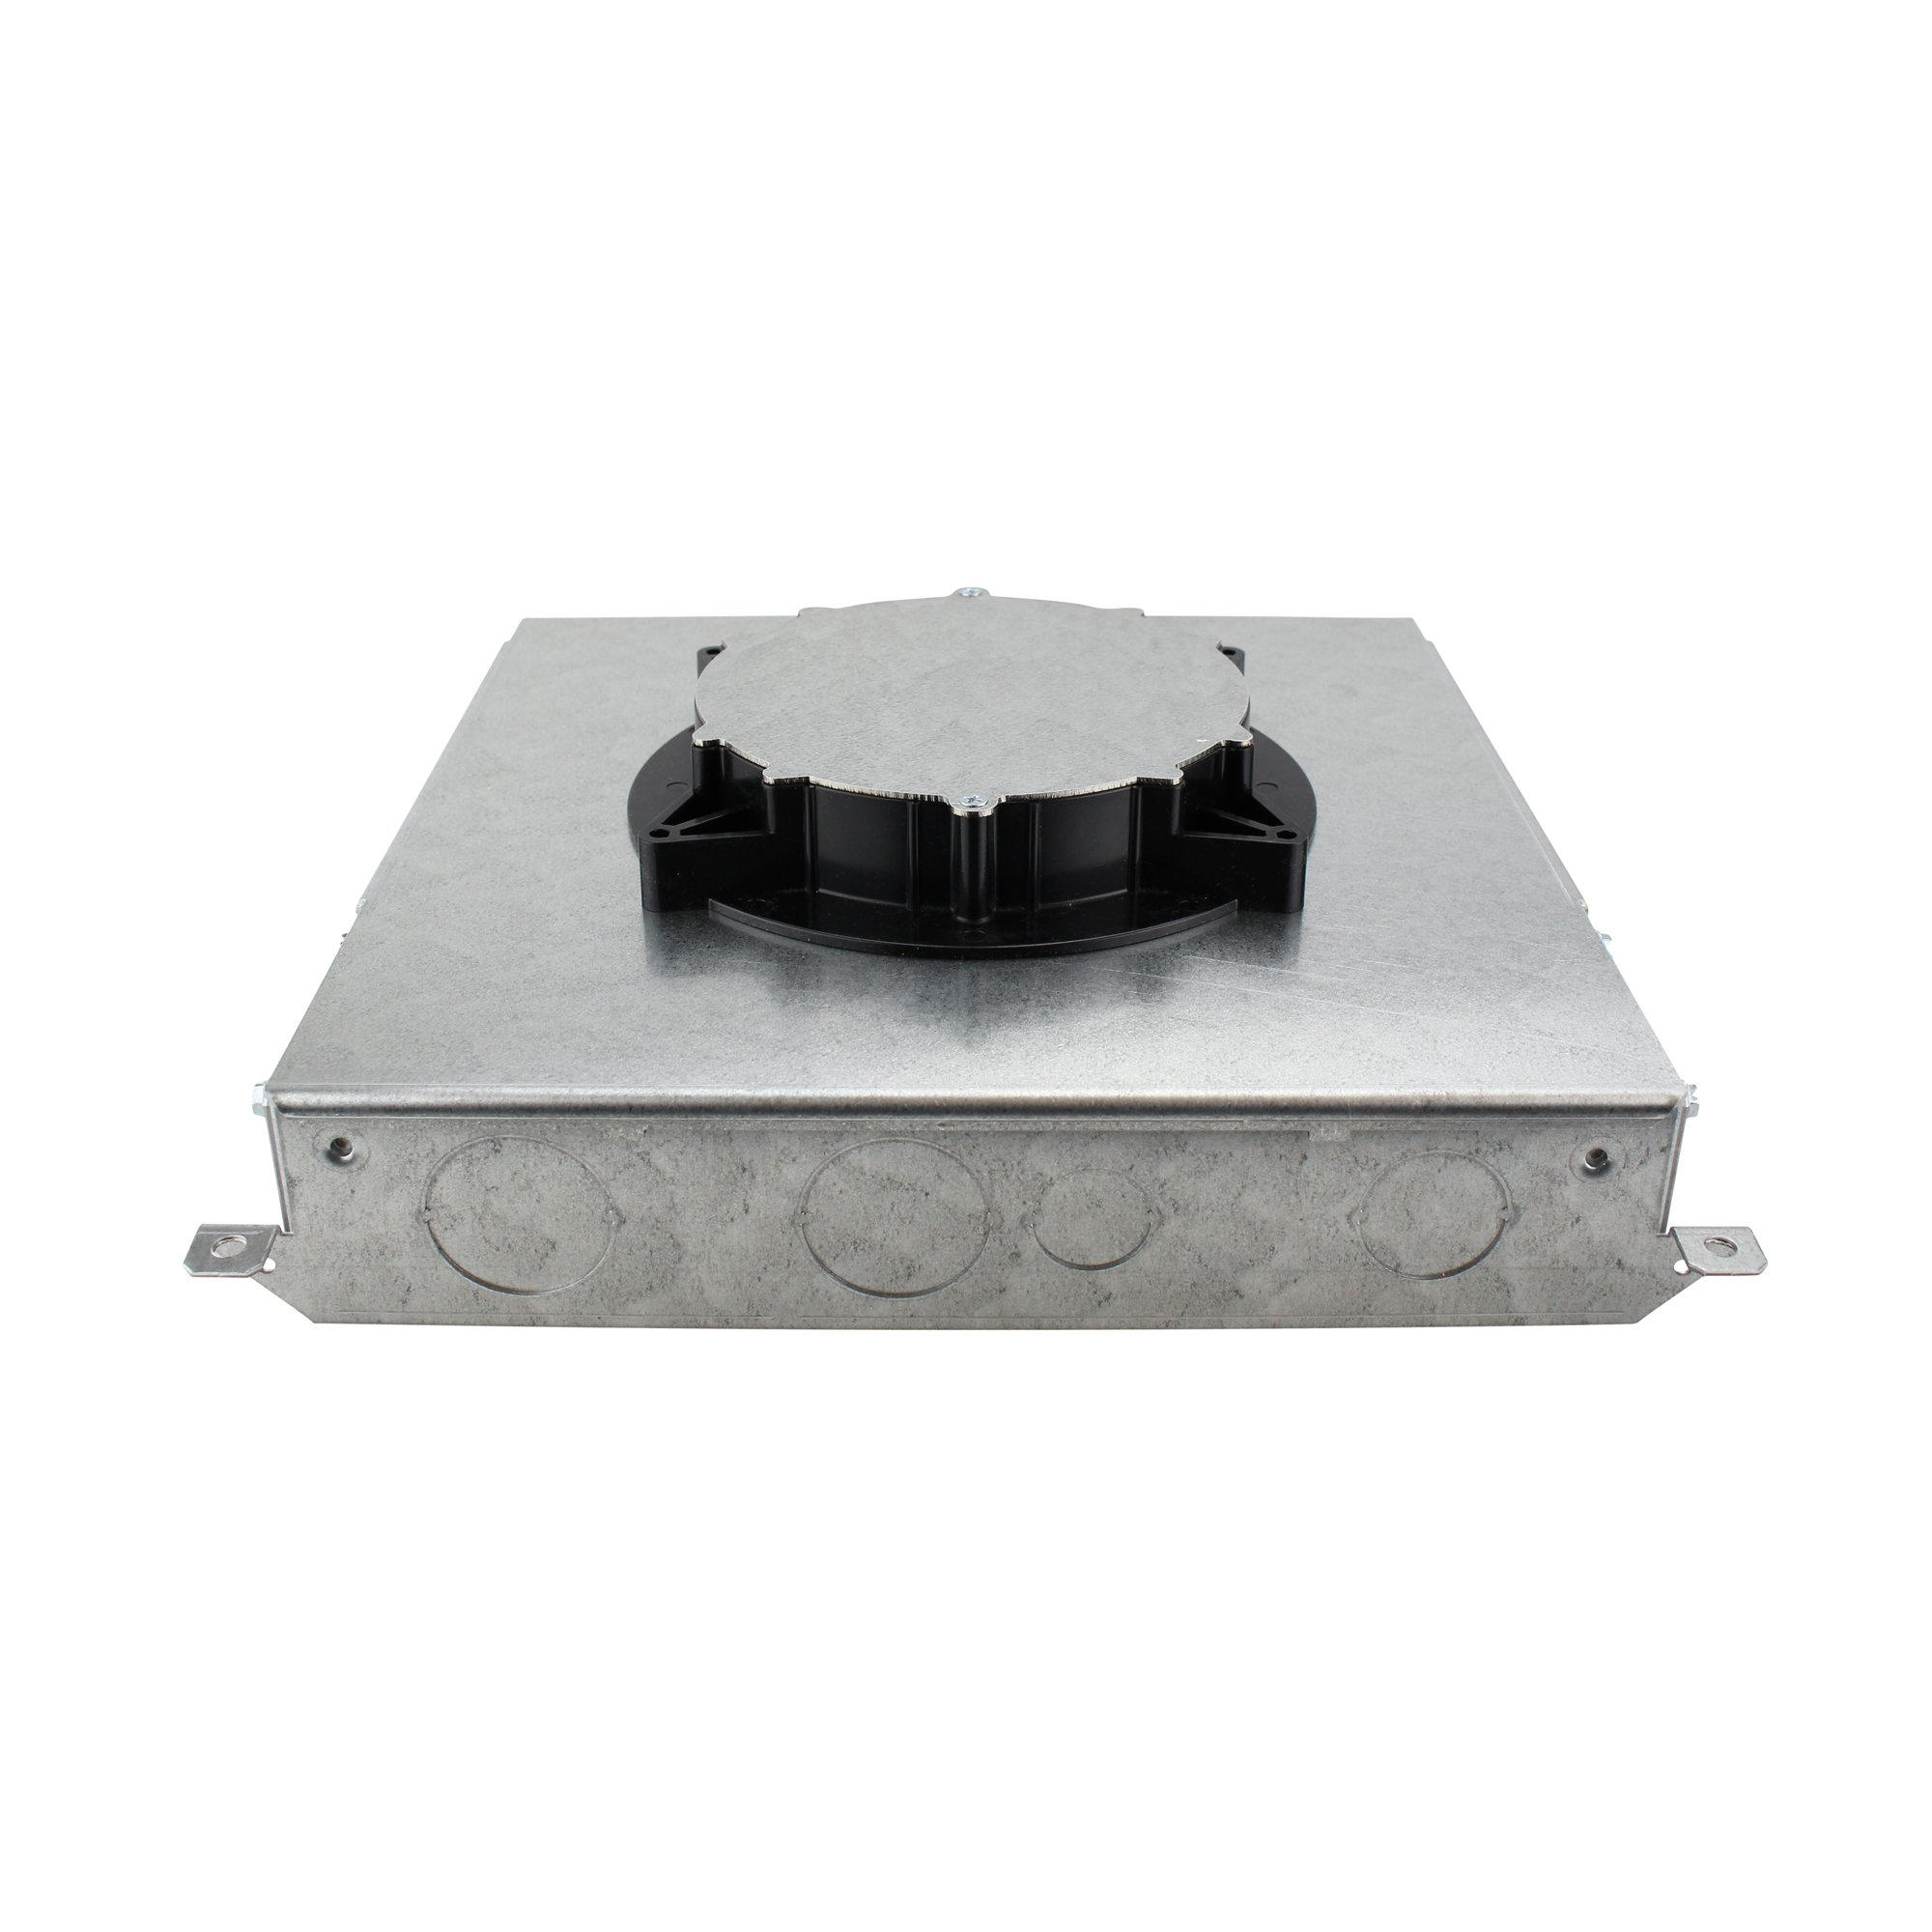 Wiremold RFB4E Steel Multi-Service Above-Grade Four-Compartment Combination Floor Box 13-1/8 Inch x 13-1/8 Inch x 4-1/16 Inch 75 Cubic-Inch